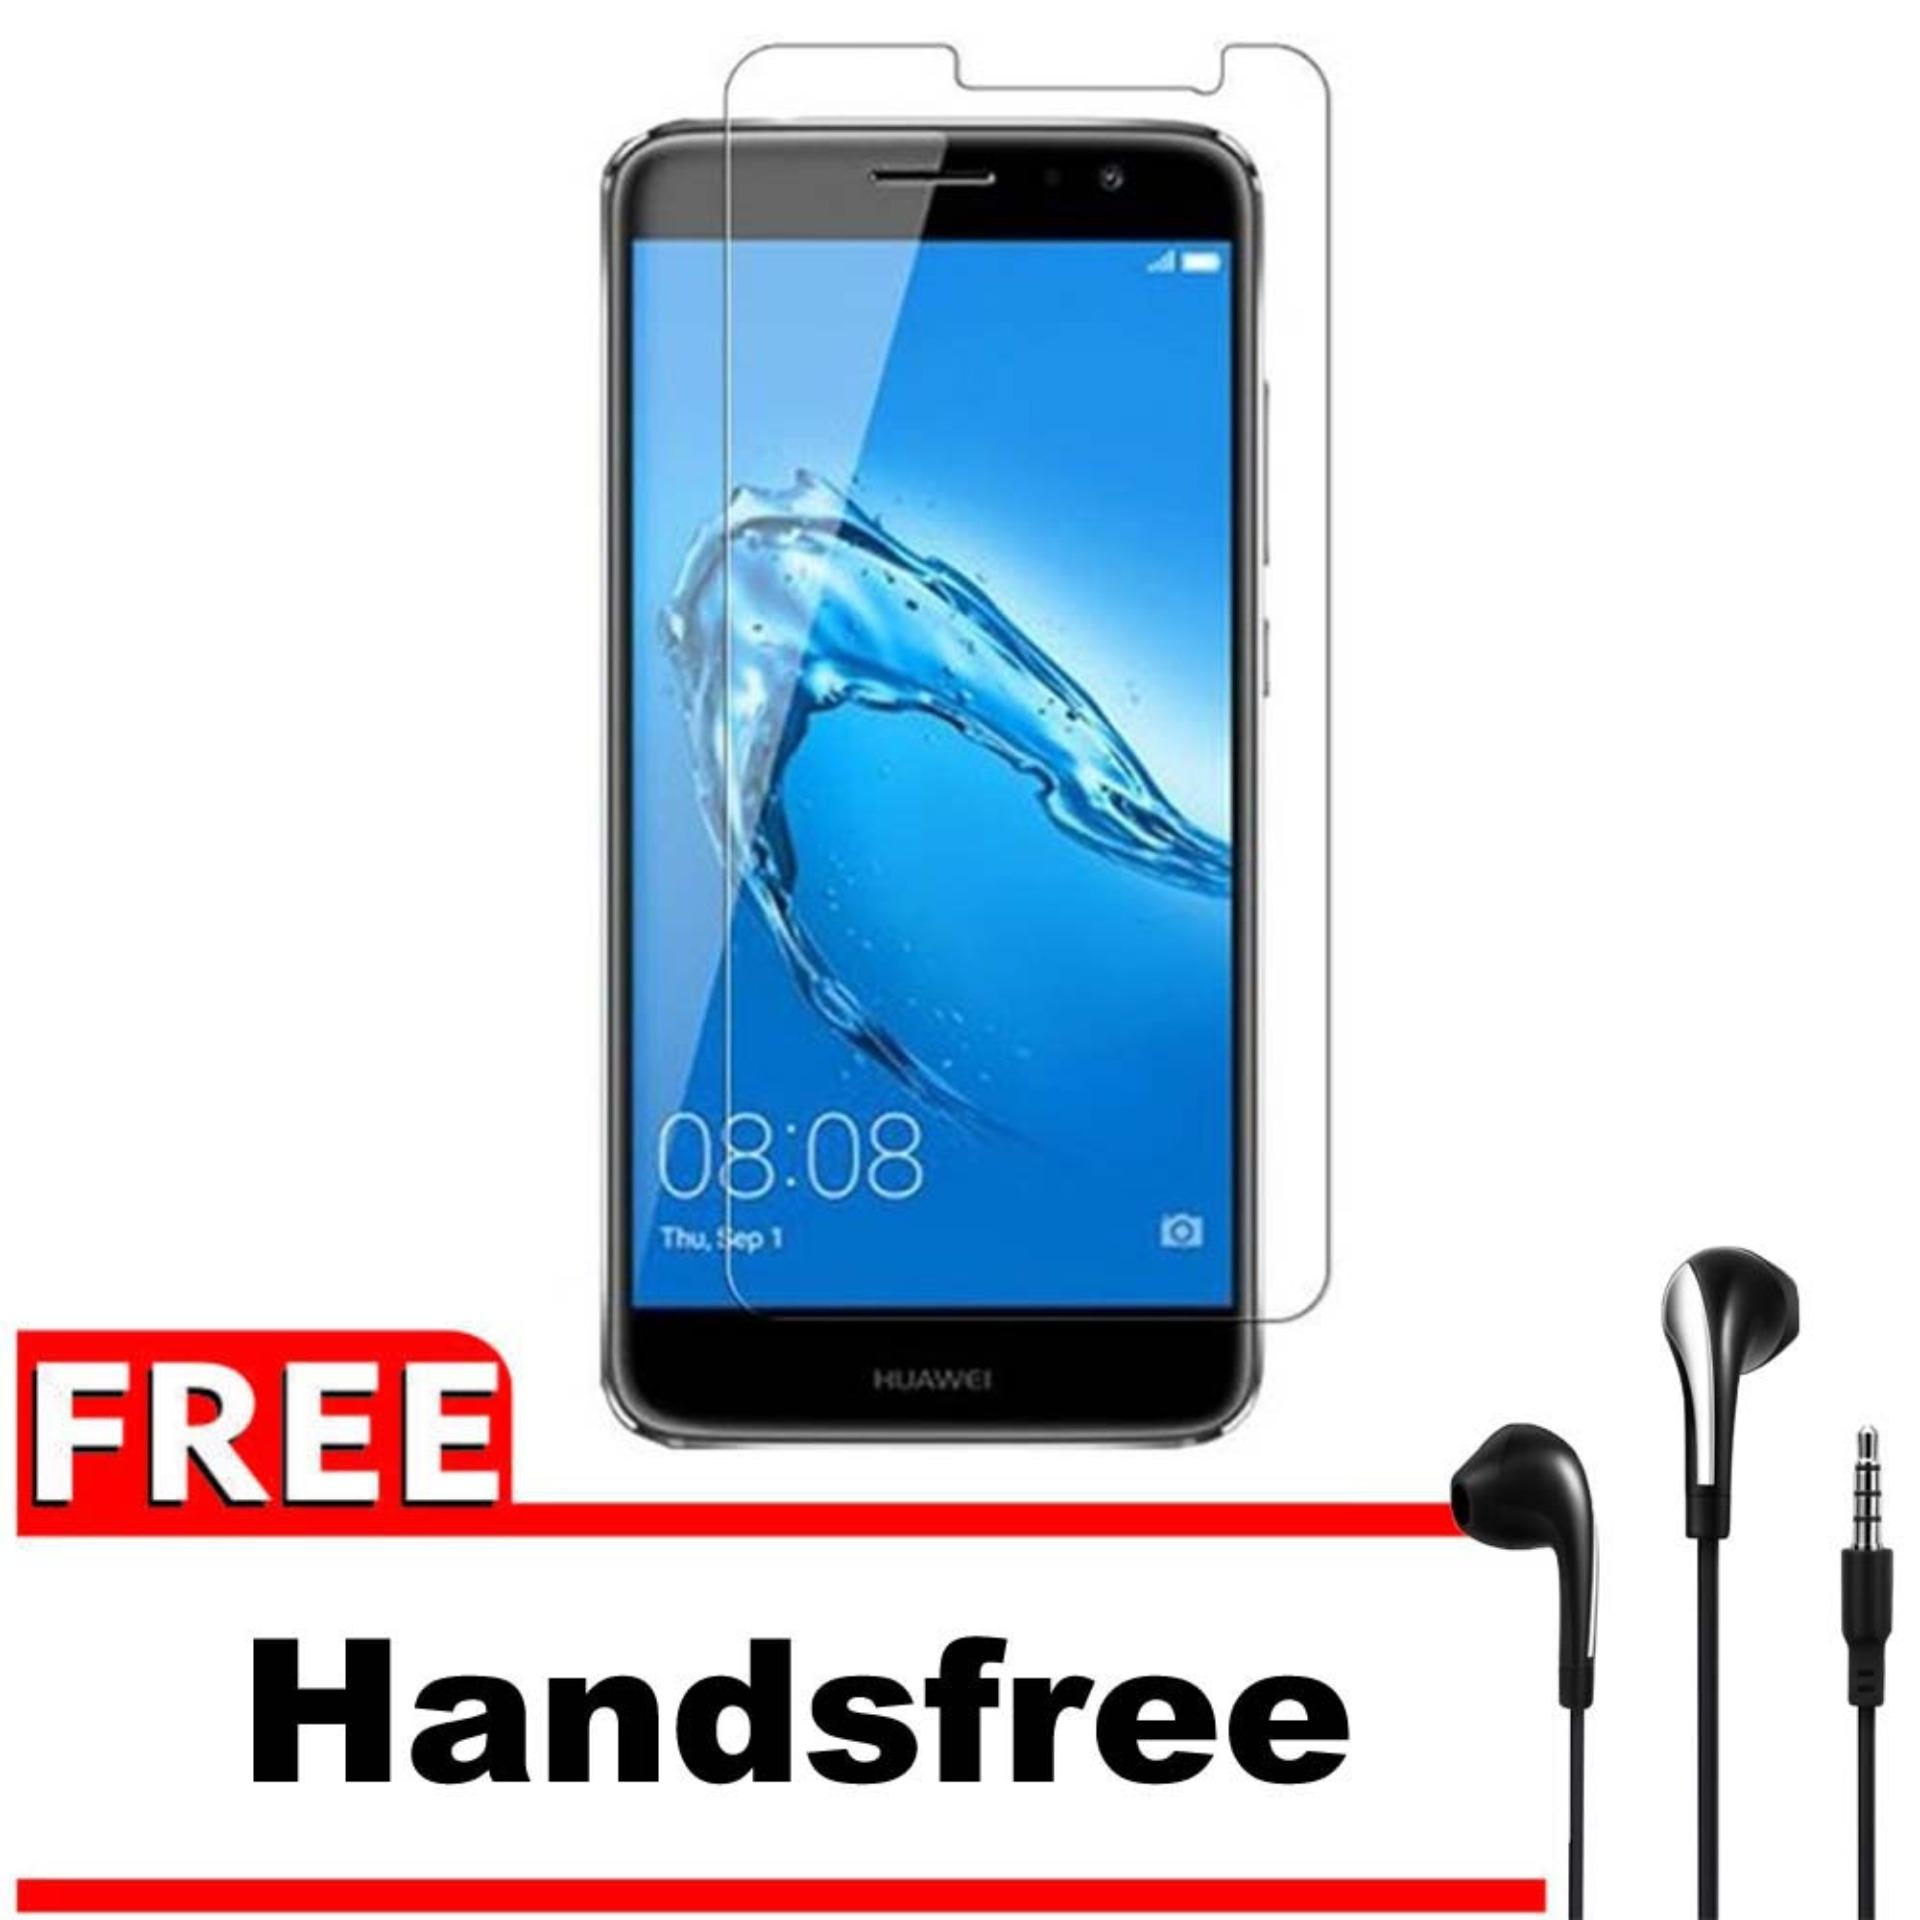 Vn Huawei Ascend Nova 2i Tempered Glass 9H Screen Protector 0.32mm + Gratis Free Handsfree